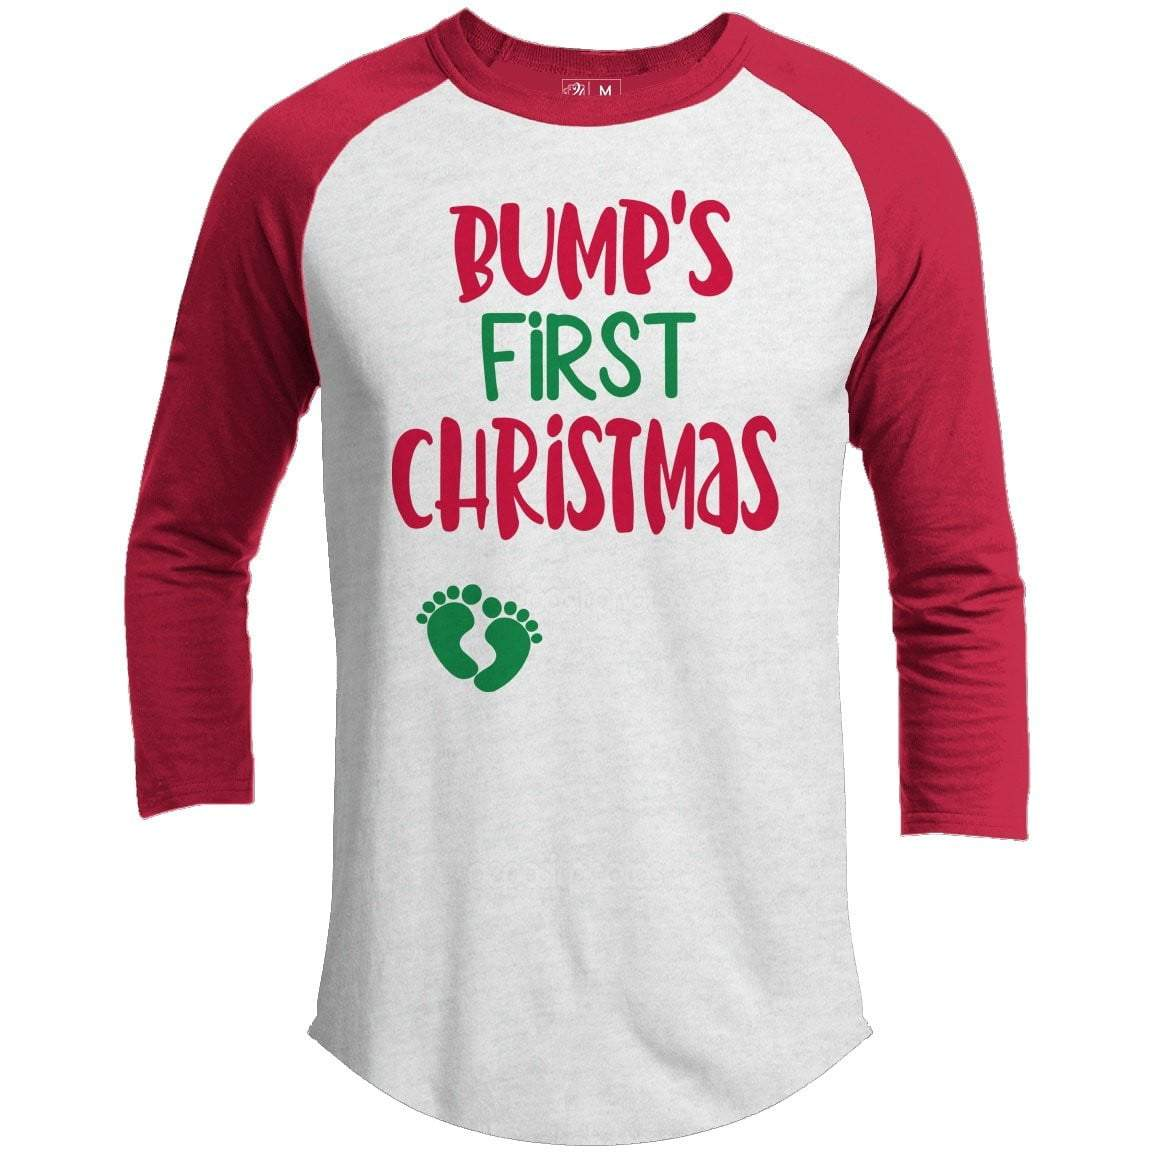 Bumps First Christmas Premium Christmas Raglan